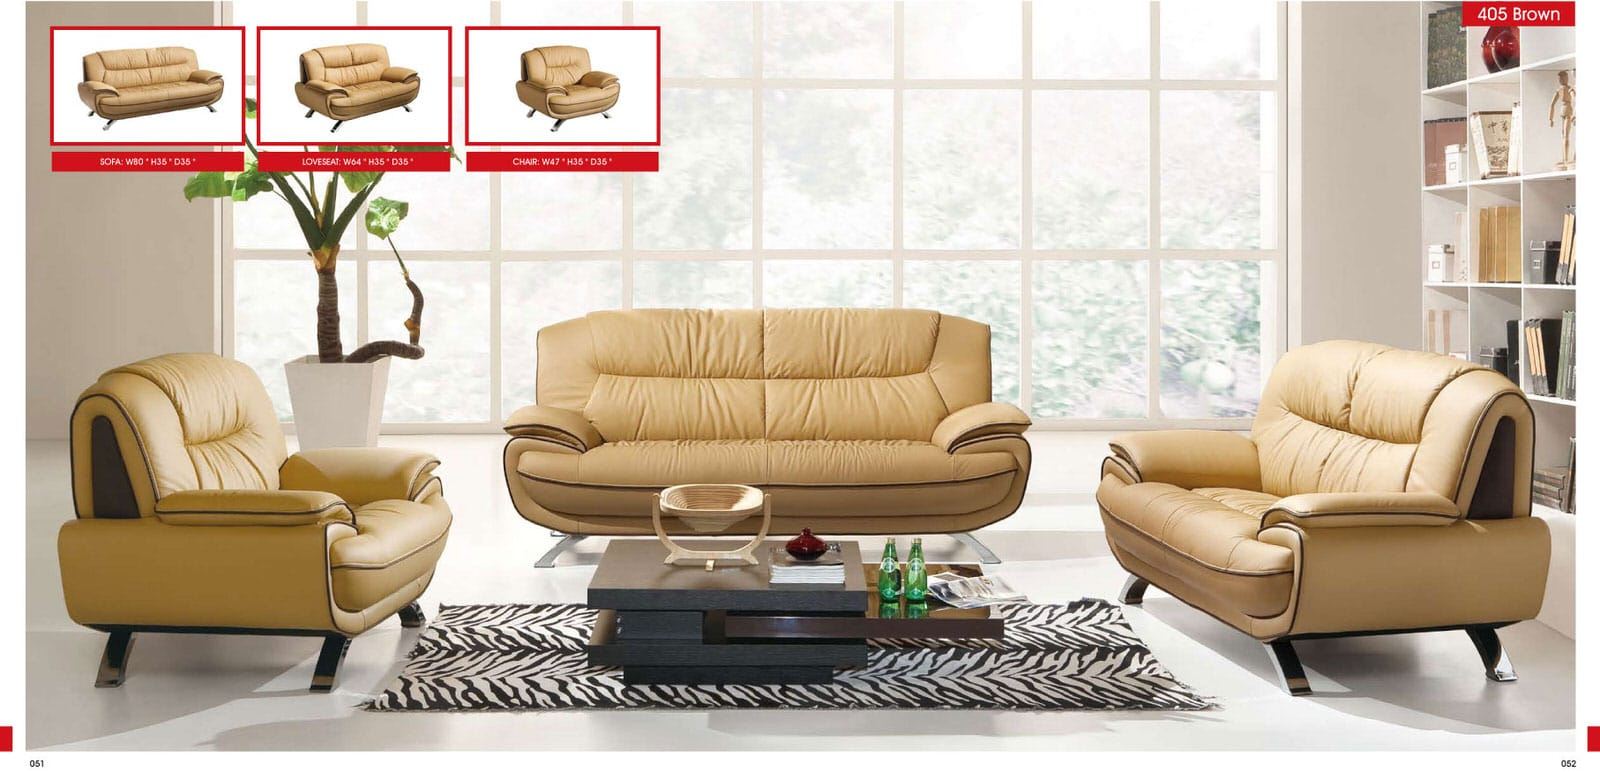 405 brown leather sofa set by esf for Brown living room furniture